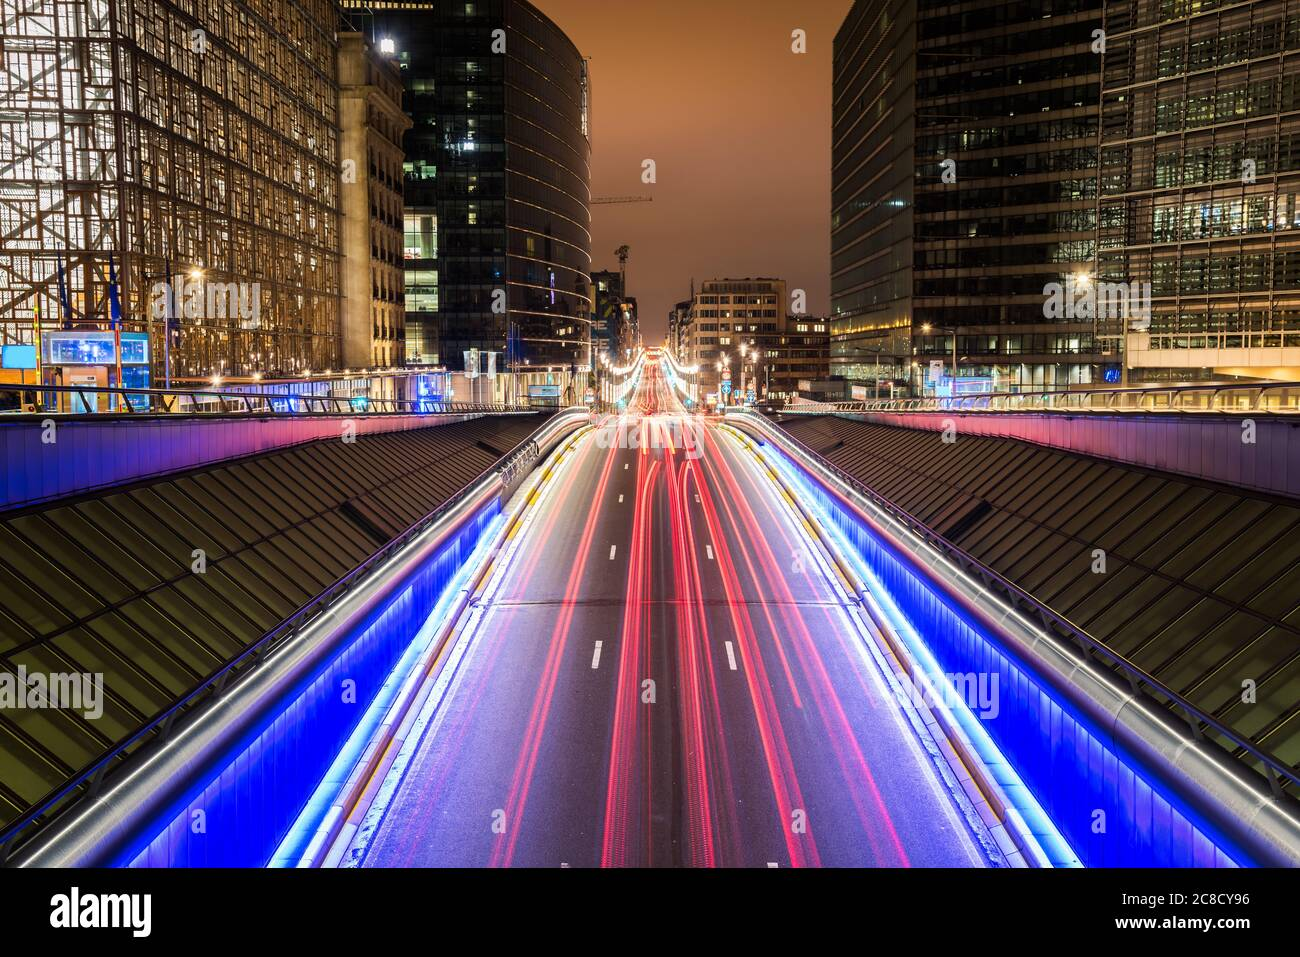 Light trails on a thoroughfare through the European Quarter in Brussels, Belgium, at night. Long exposure. Stock Photo